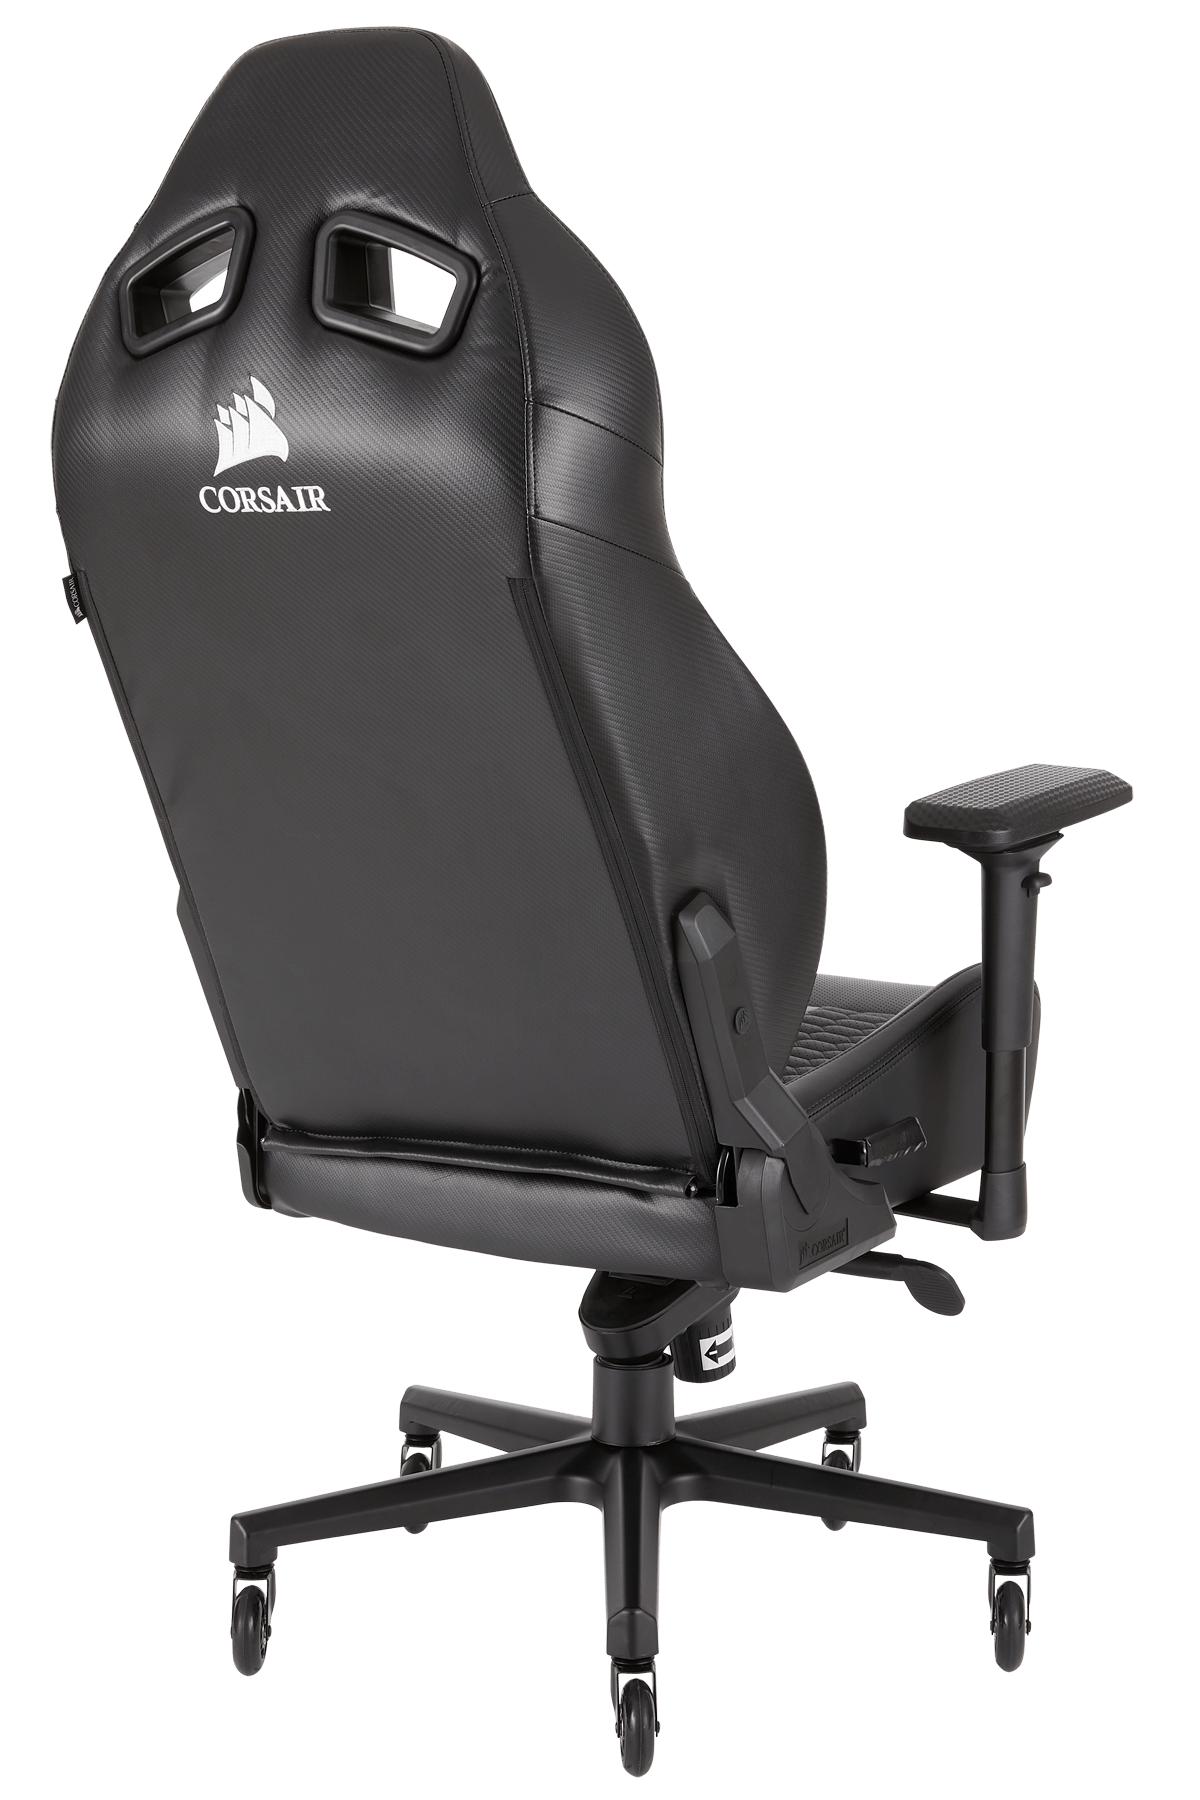 Gaming Sessel Mit Lenkrad Corsair T2 Road Warrior Chair Black Gaming Stuhl Schwarz Pu Leder Bis Zu 130 Kg